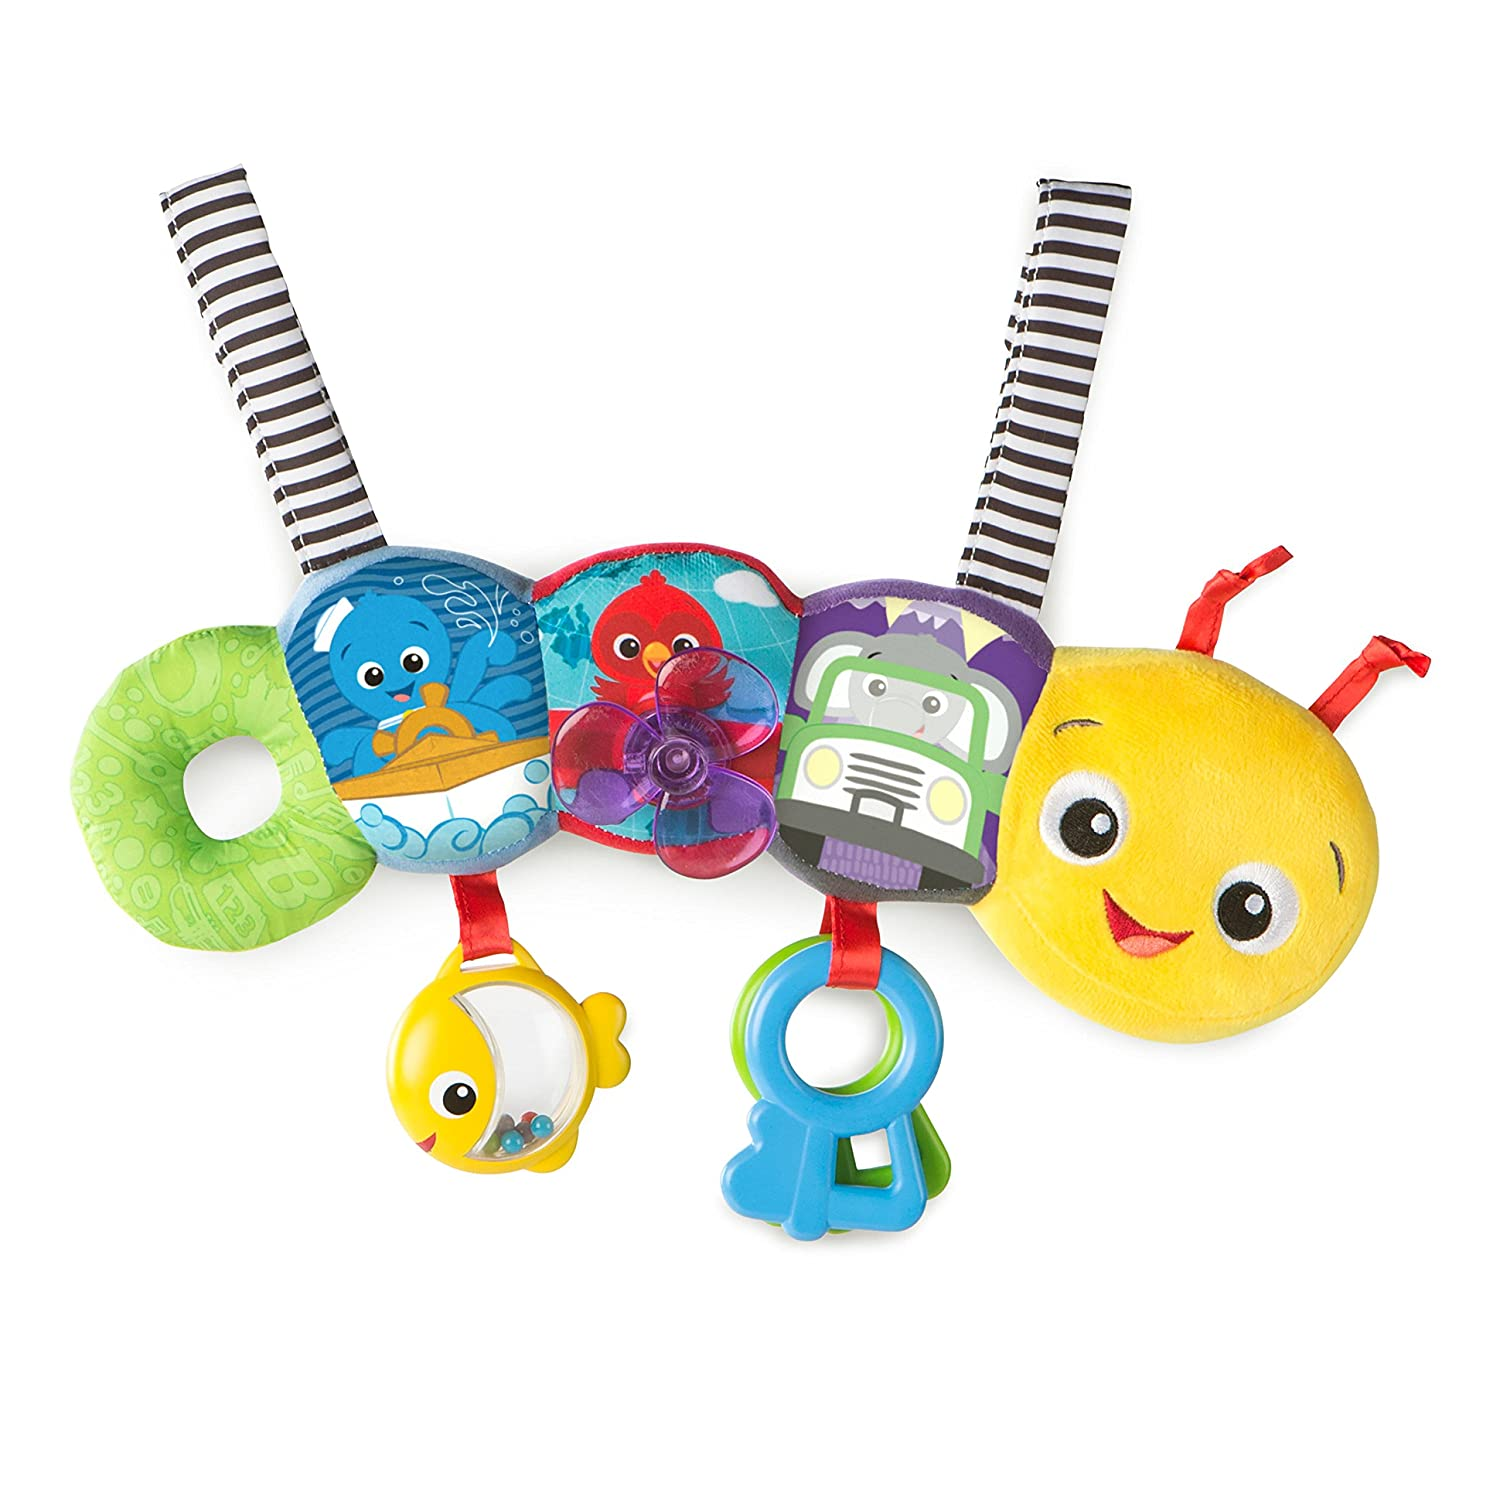 Baby Einstein Barre d'Activités Travel-Pillar Discovery Toy Bar, 11155 KidsII 11155-6